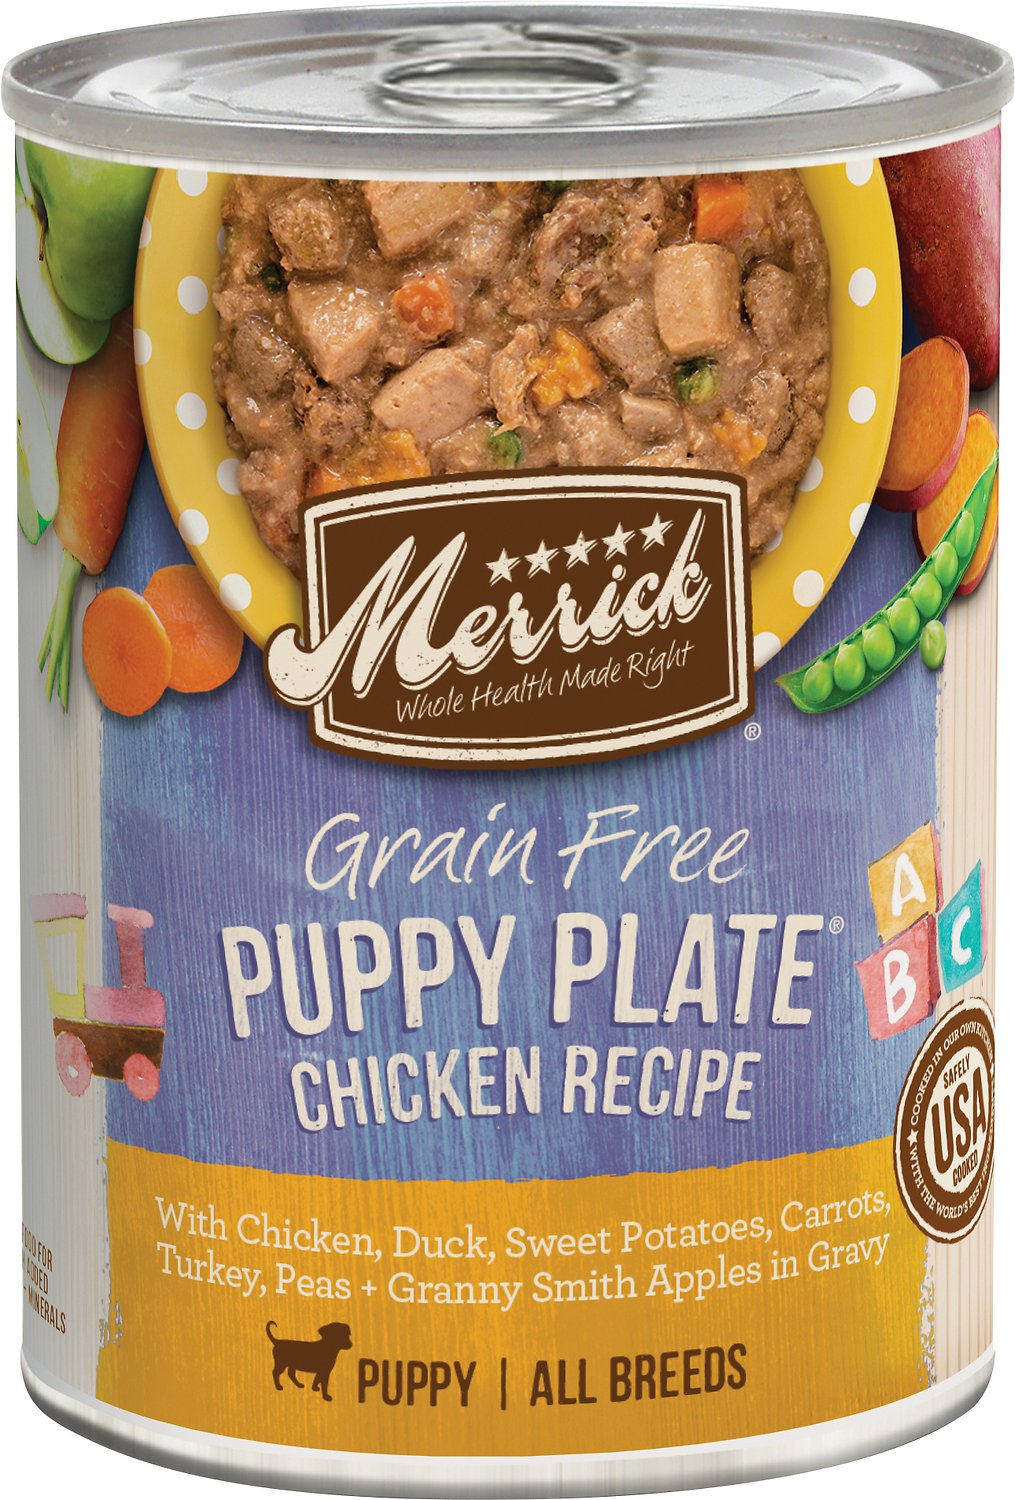 Merrick Puppy Plate Chicken Recipe Wet Dog Food, 12.7-oz